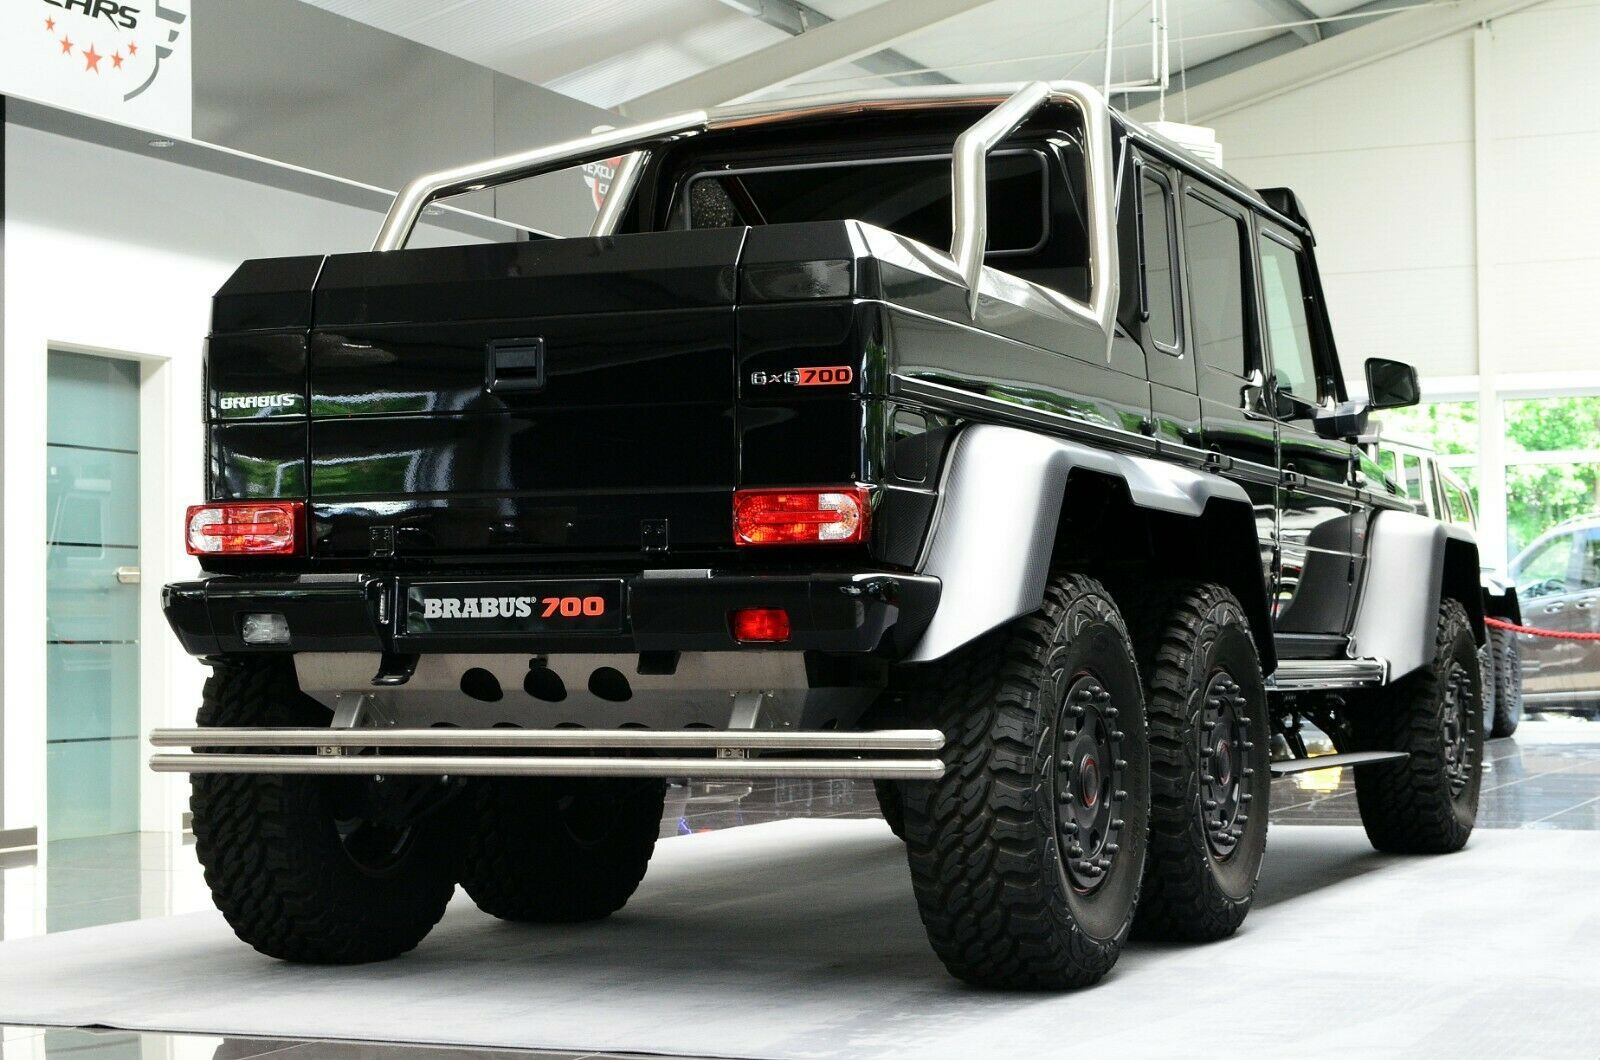 Mercedes Benz G 63 Amg 6x6 Brabus700 1of15 Luxury Pulse Cars